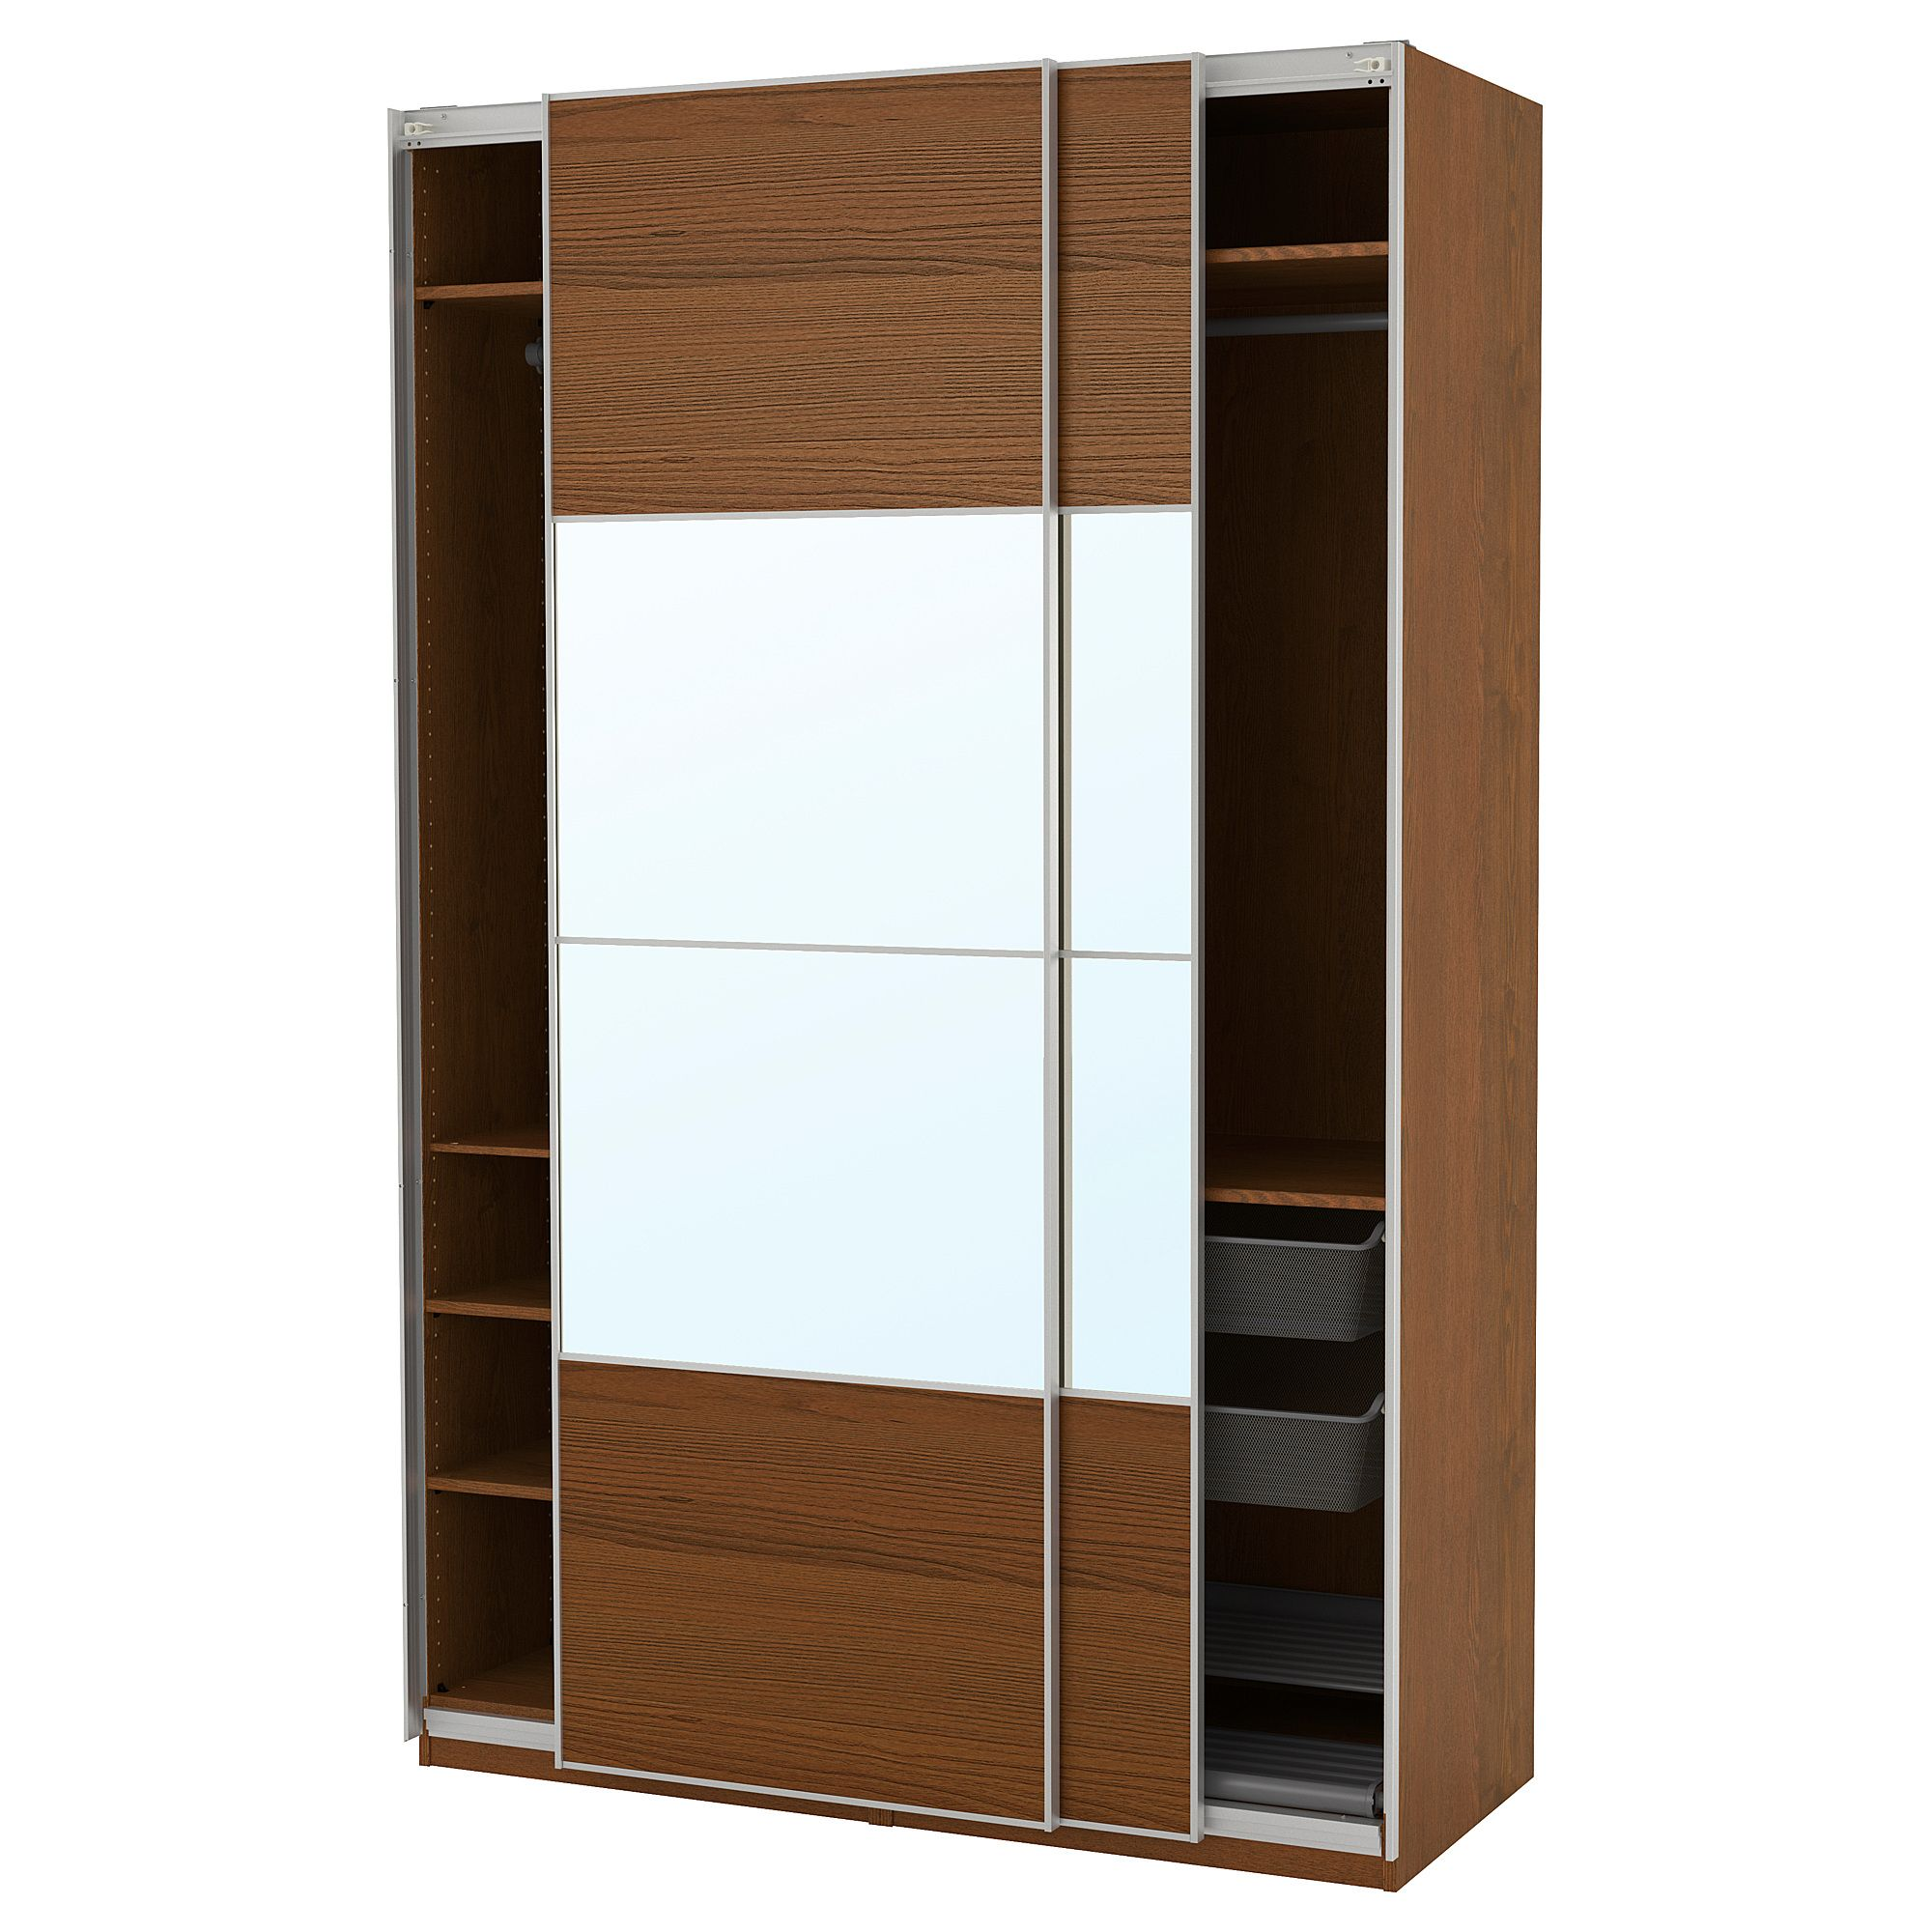 IKEA PAX Wardrobe brown stained ash effect, Auli Ilseng